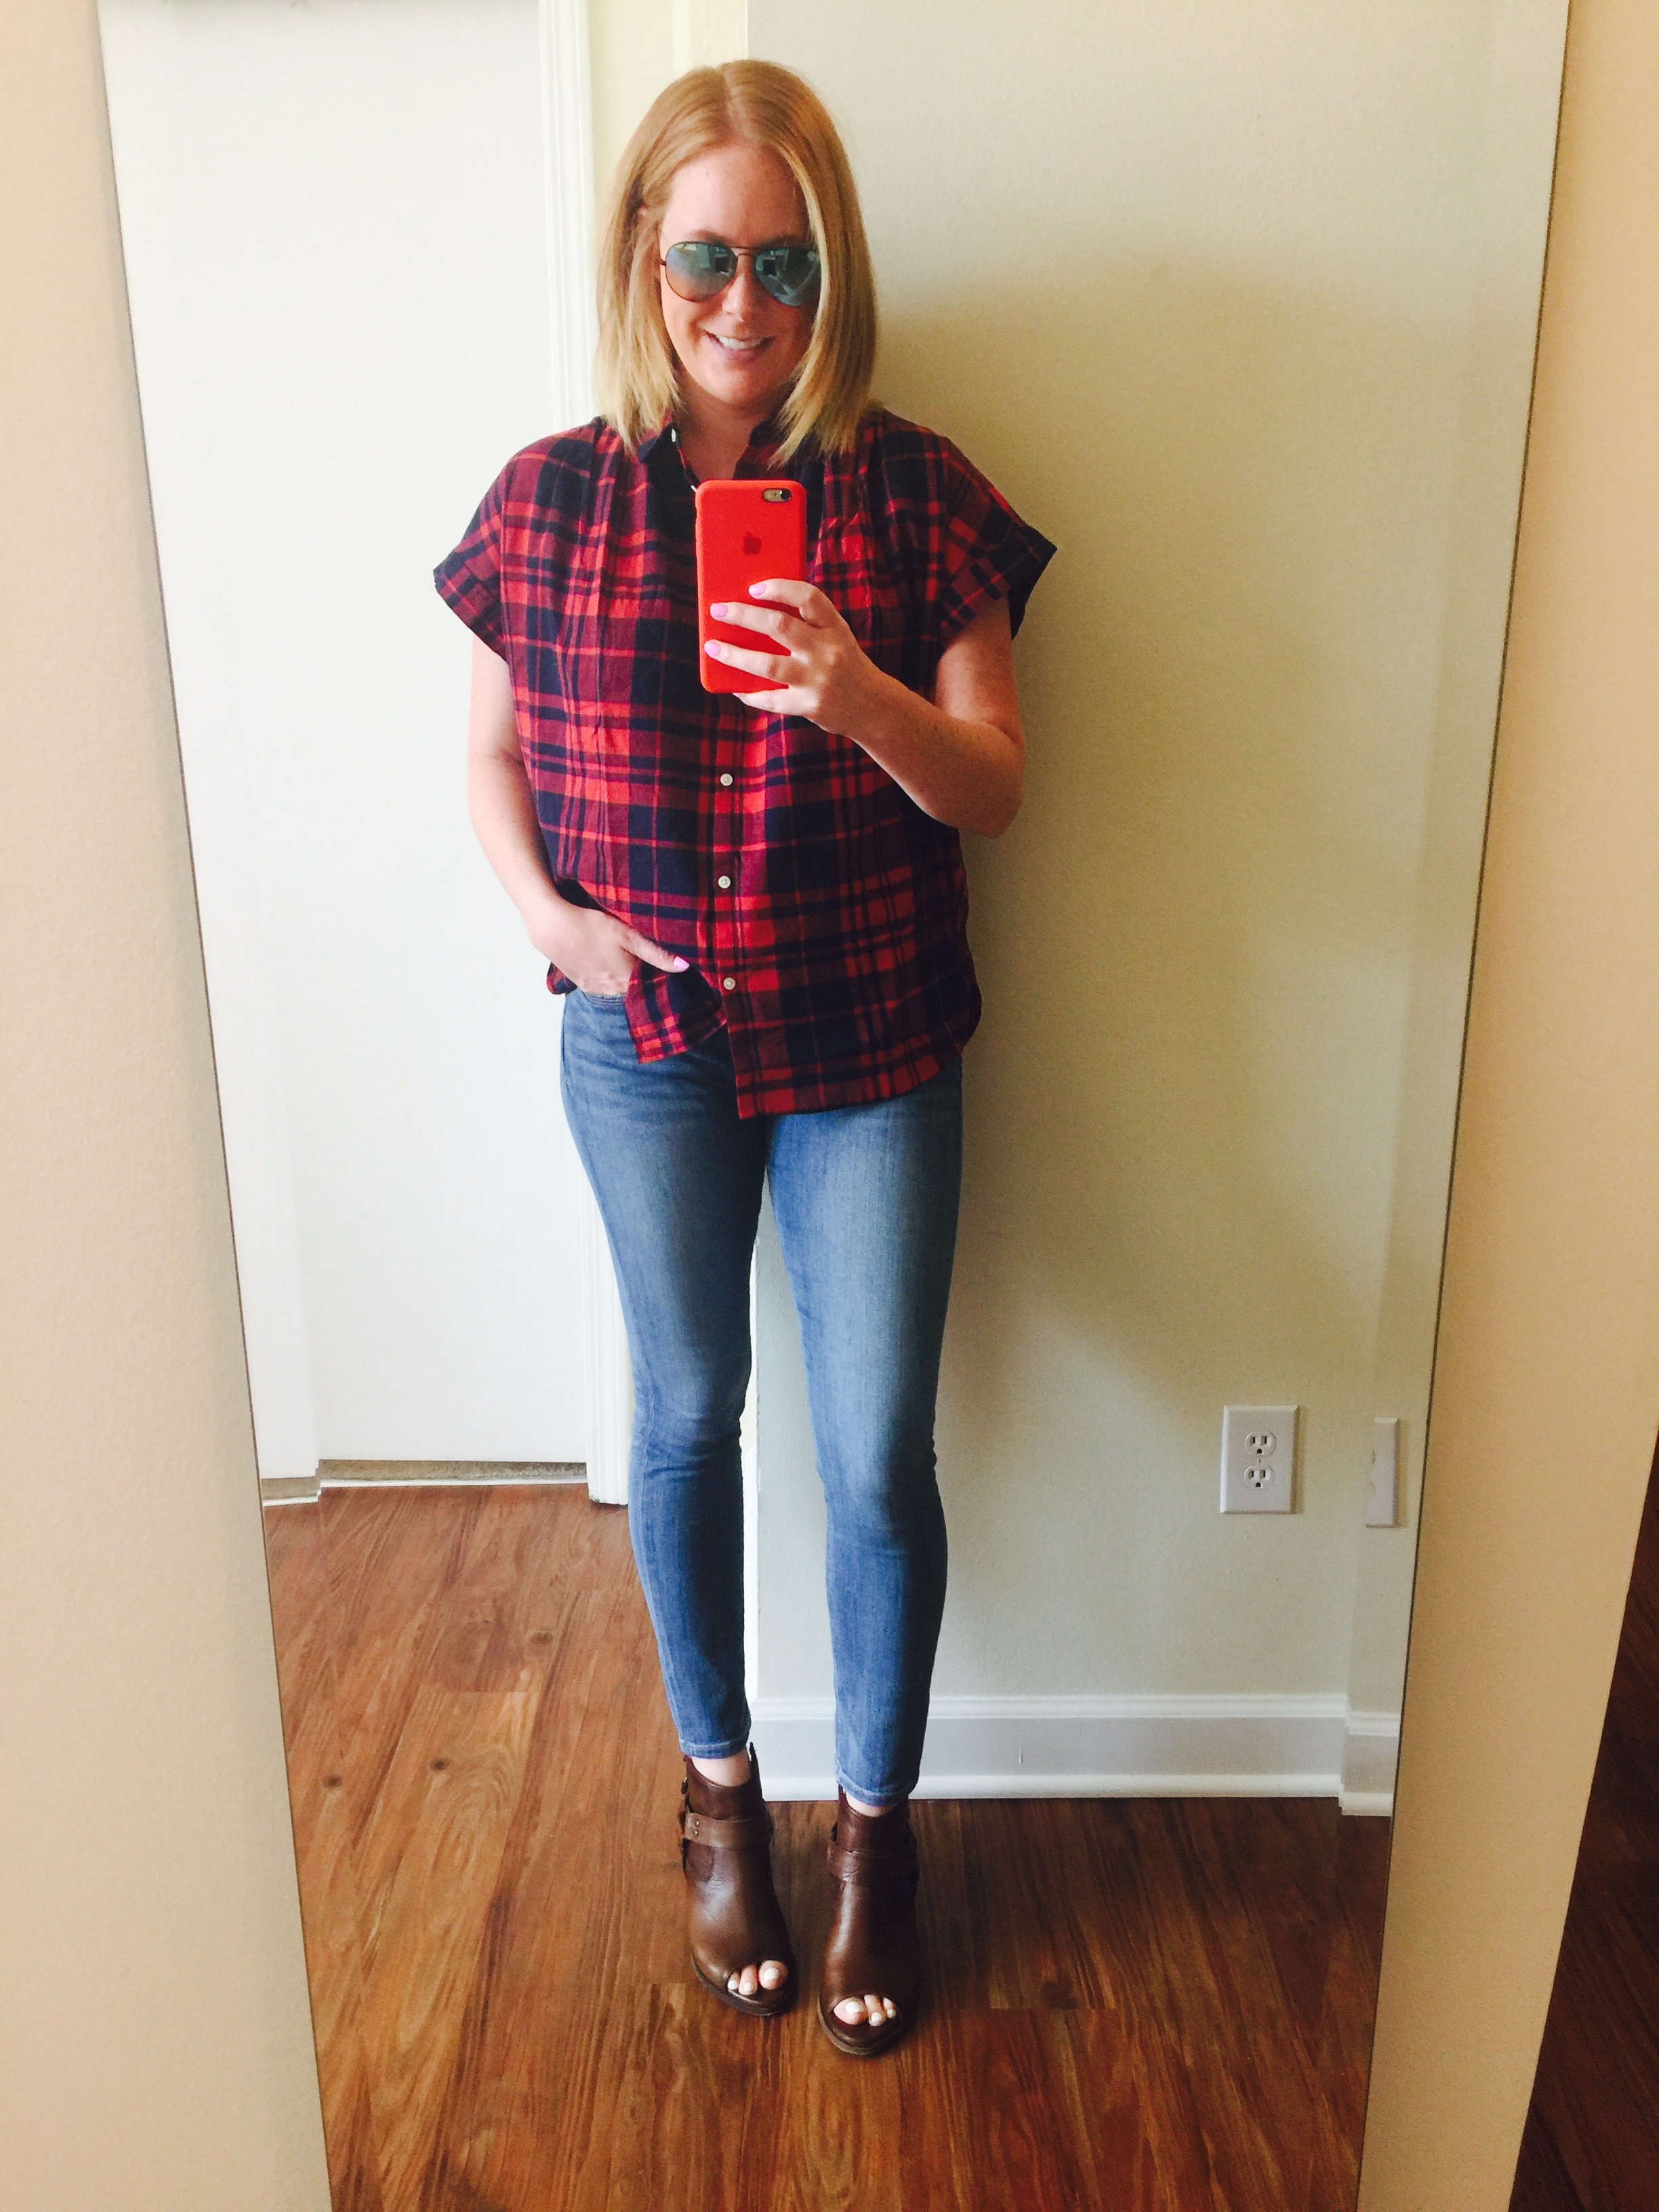 Top: Madewell,  central shirt   Jeans: Express,  Faded Medium Wash Blue Mid Rise Jean Legging    Shoes: Frye,  izzy harness sling    Sunglasses: RayBan,  Aviator Flash Lenses Gradient  (in Black-Blue)